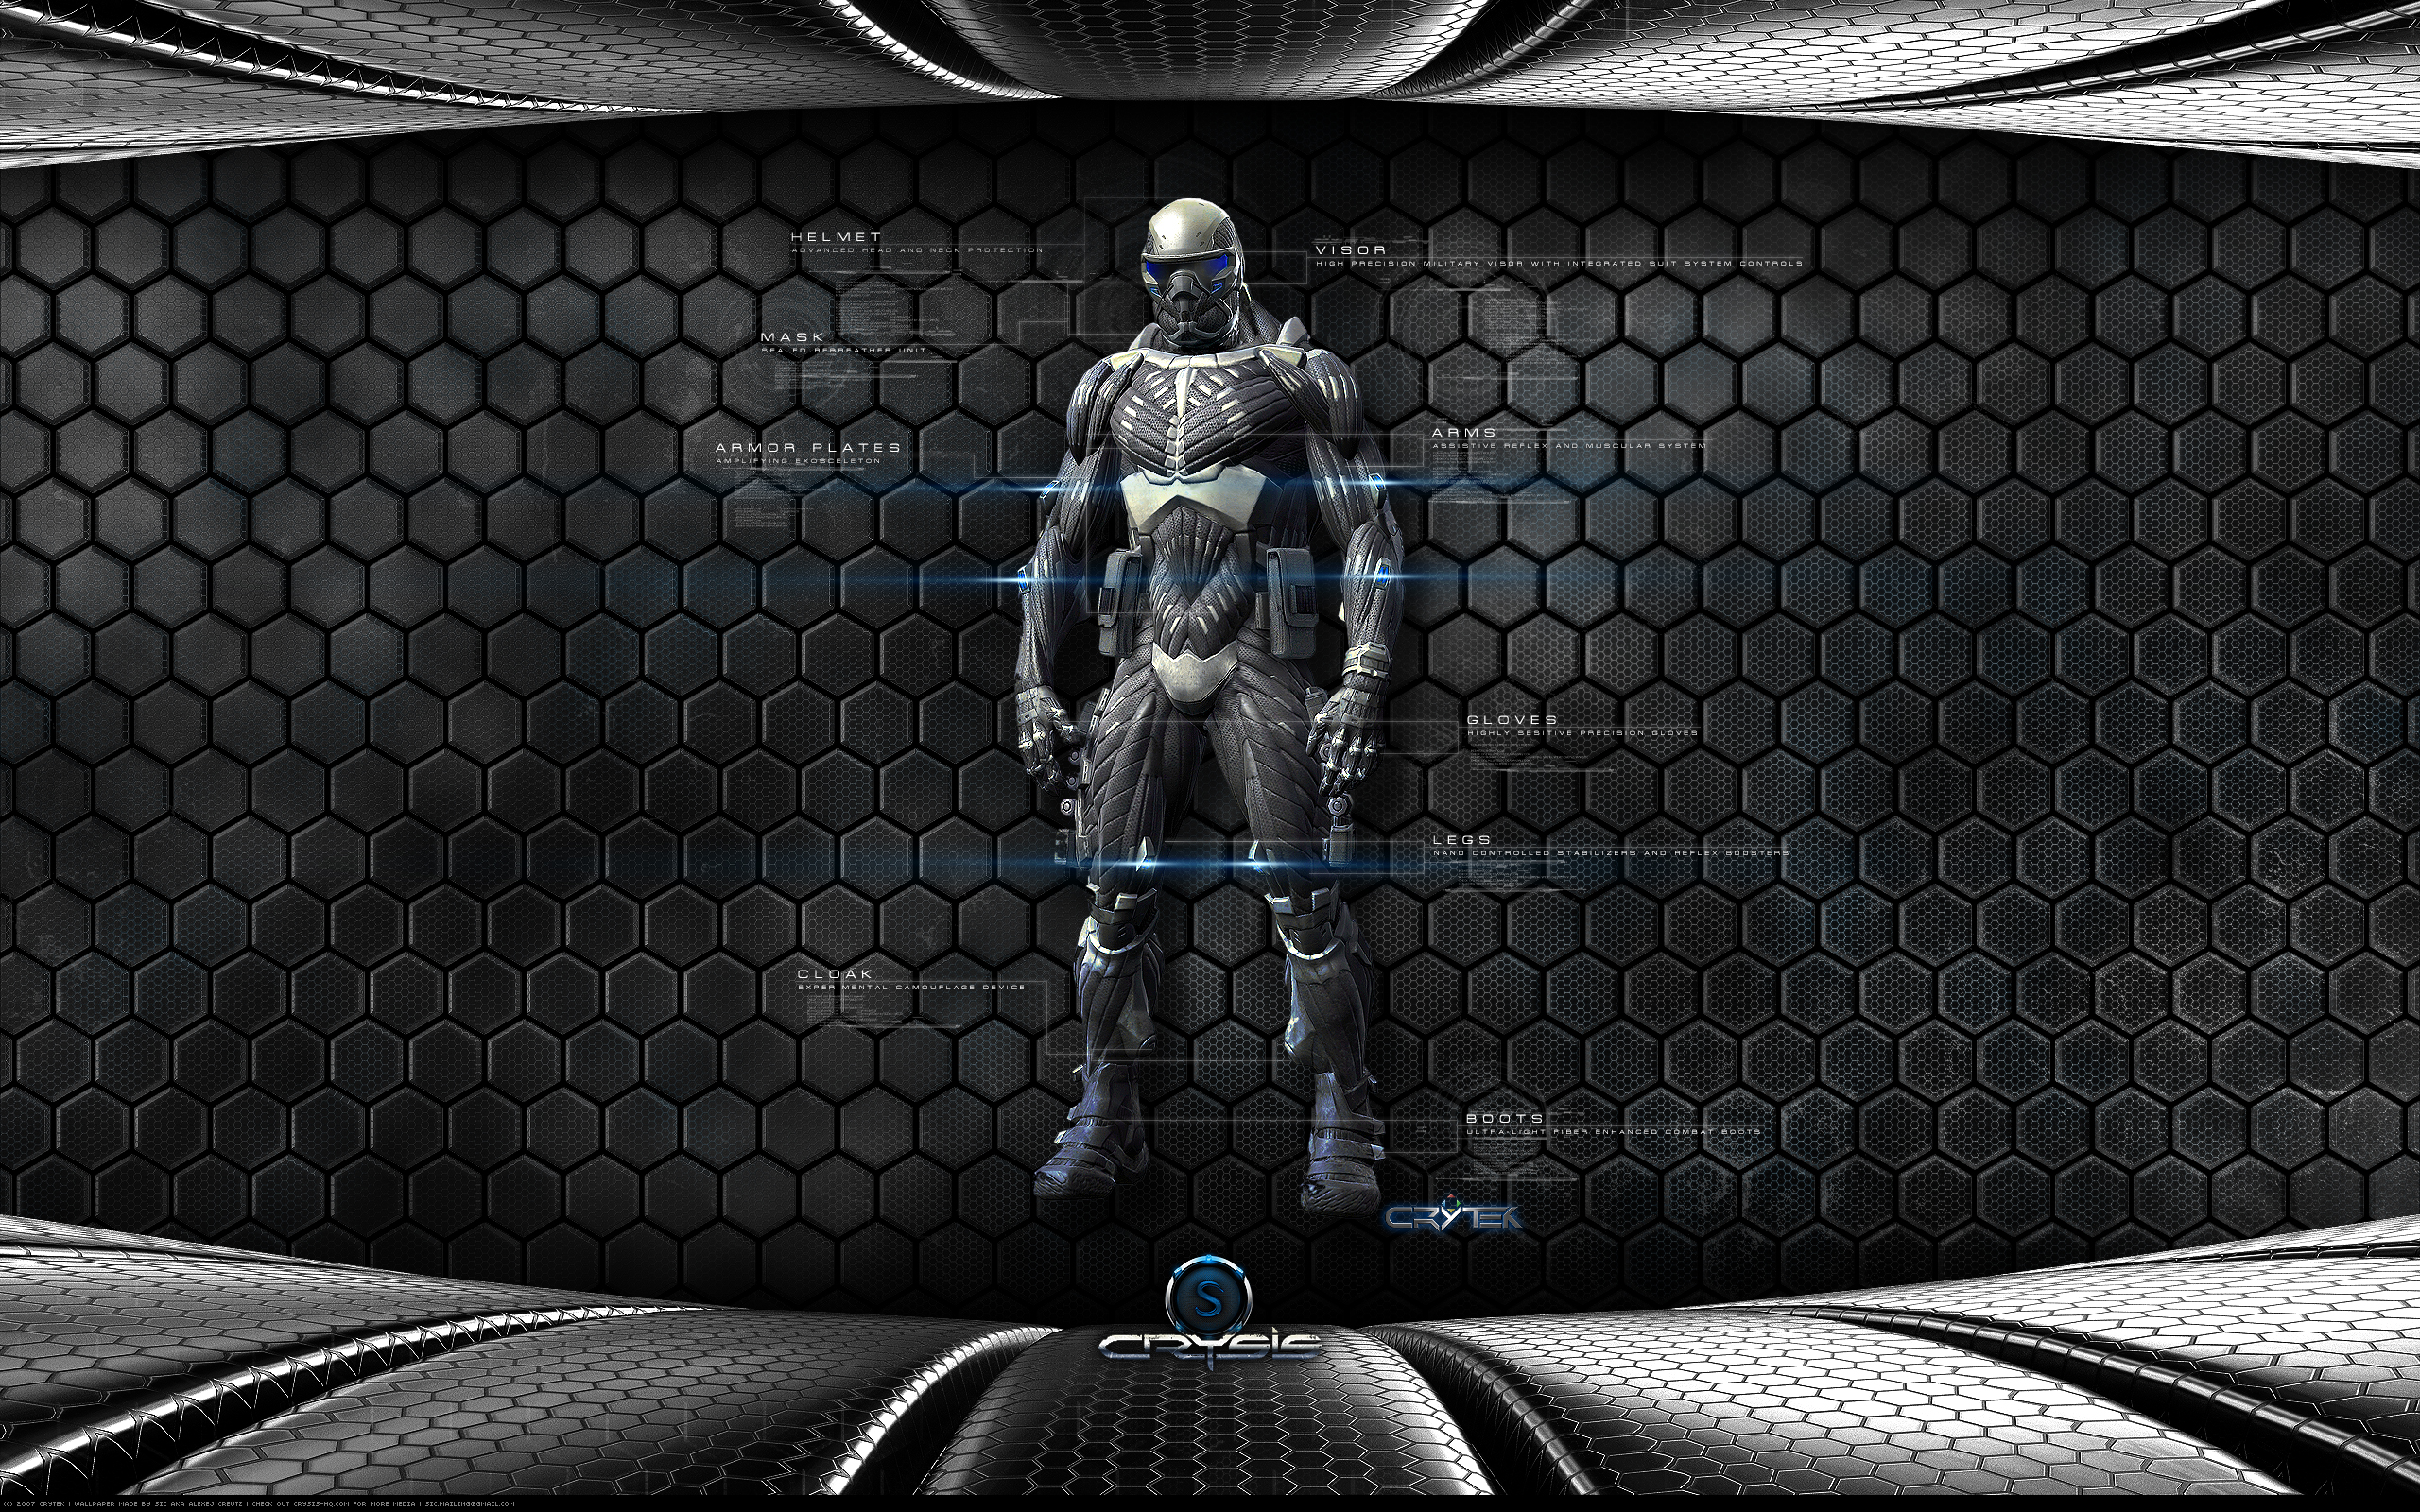 Crysis Wallpaper 13 Pack By 2sic On DeviantArt